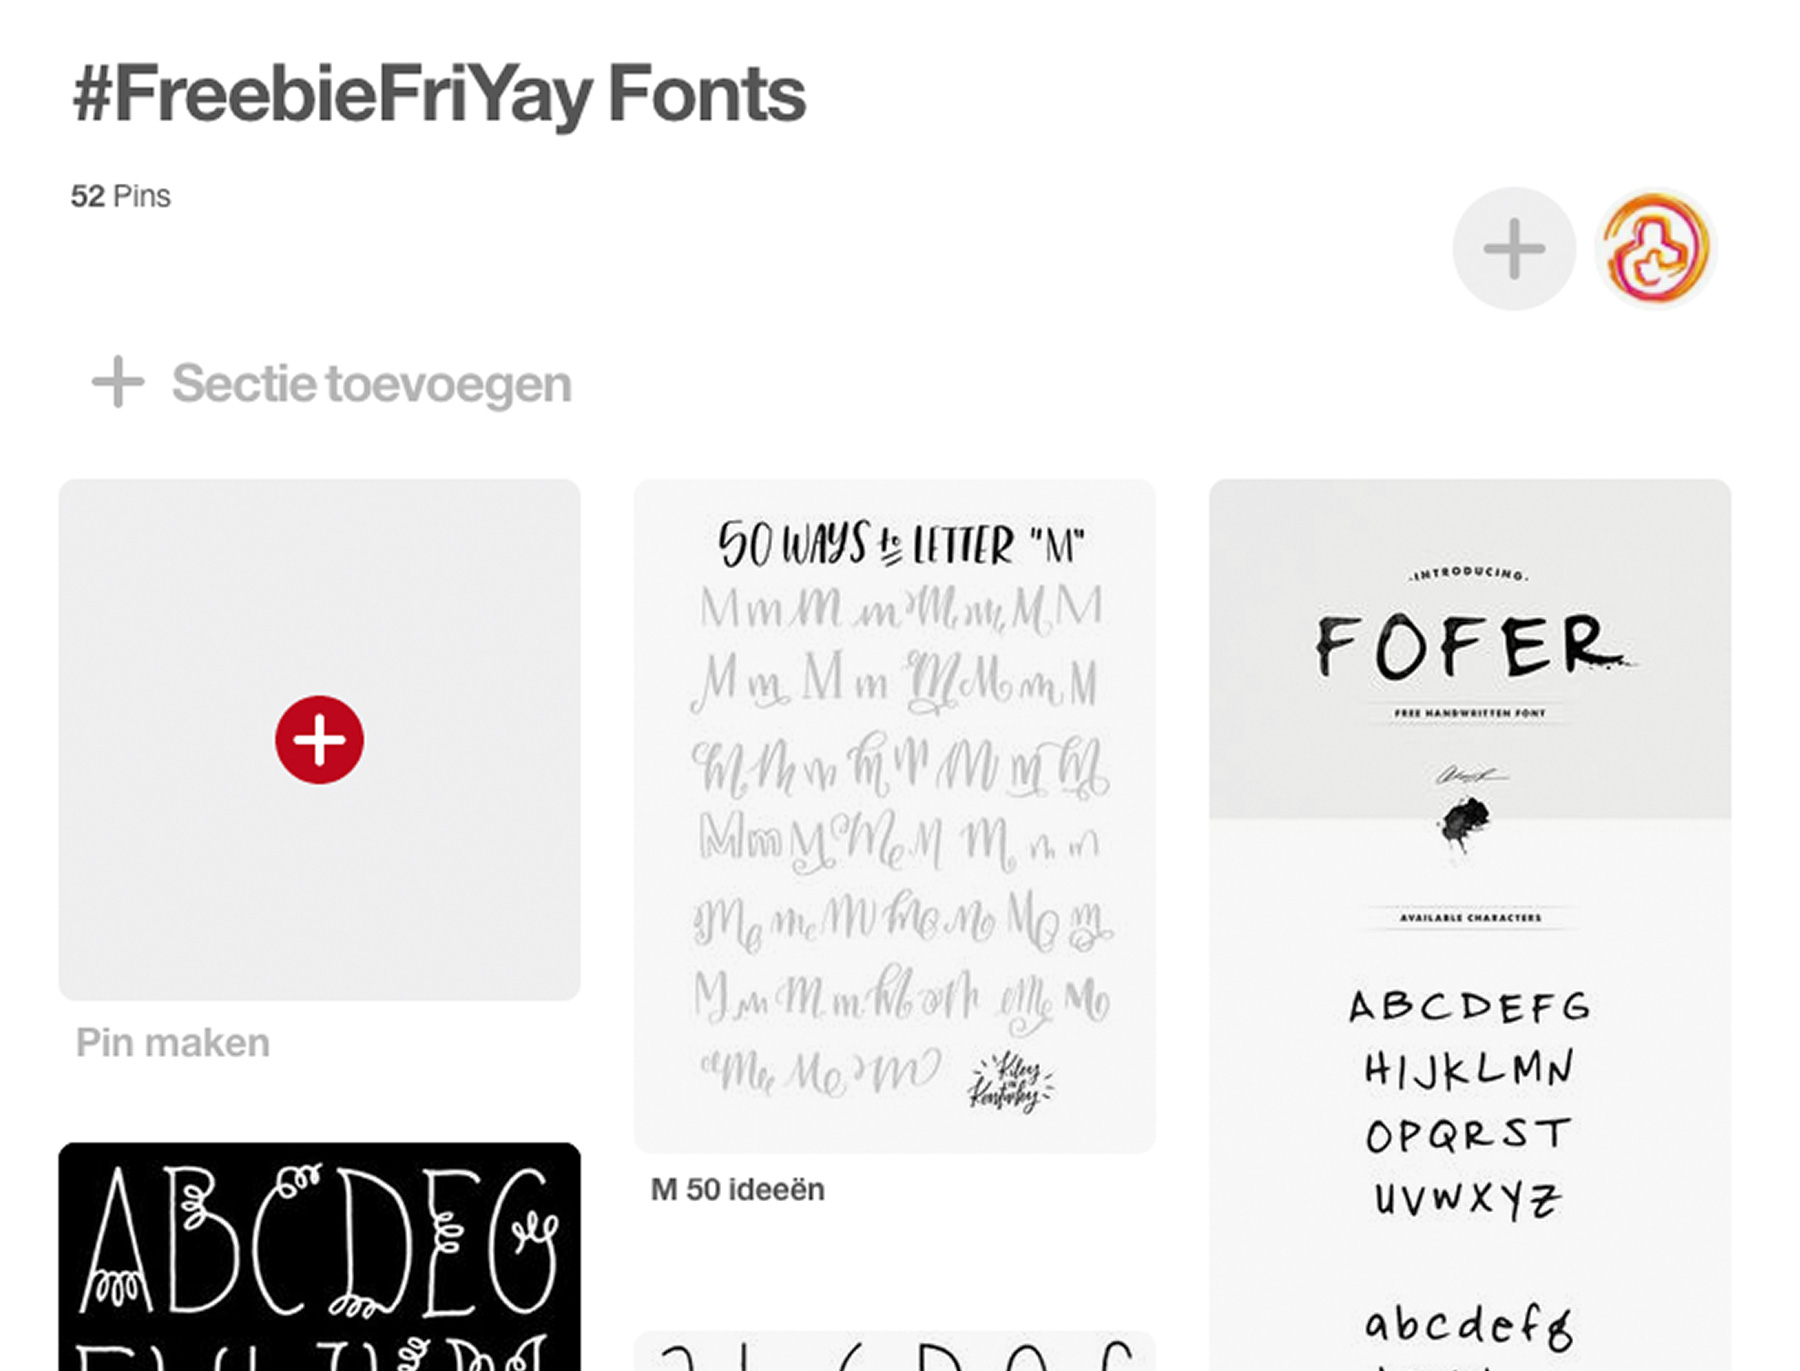 freebiefriyay-week-2 pinterest-fonts